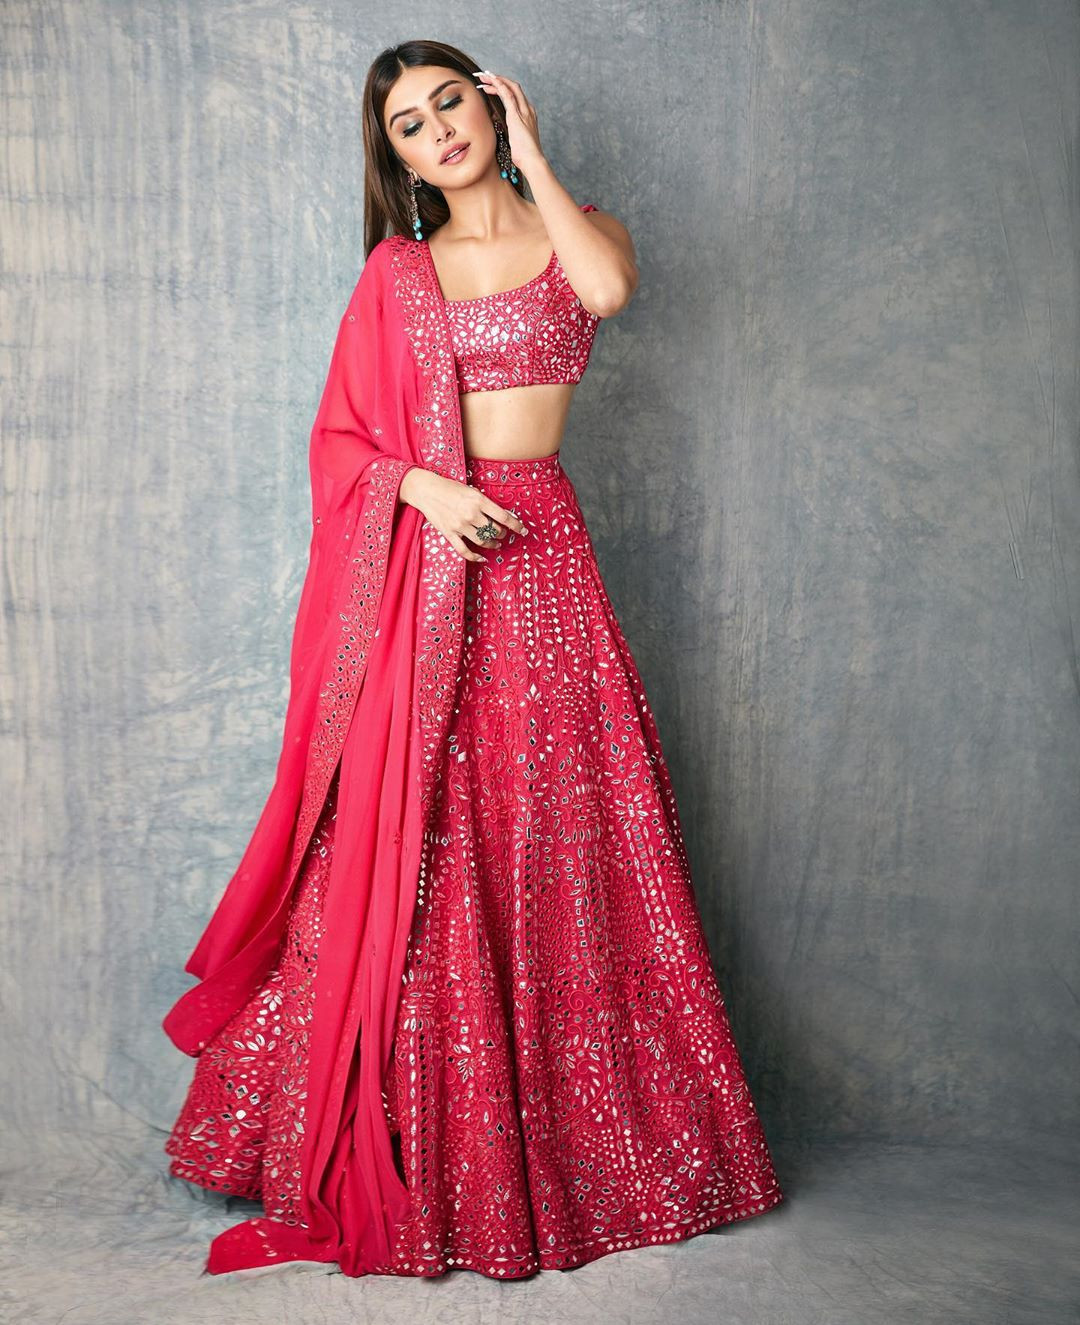 Tara Sutaria Pink Color Festival Wear Lehenga Choli